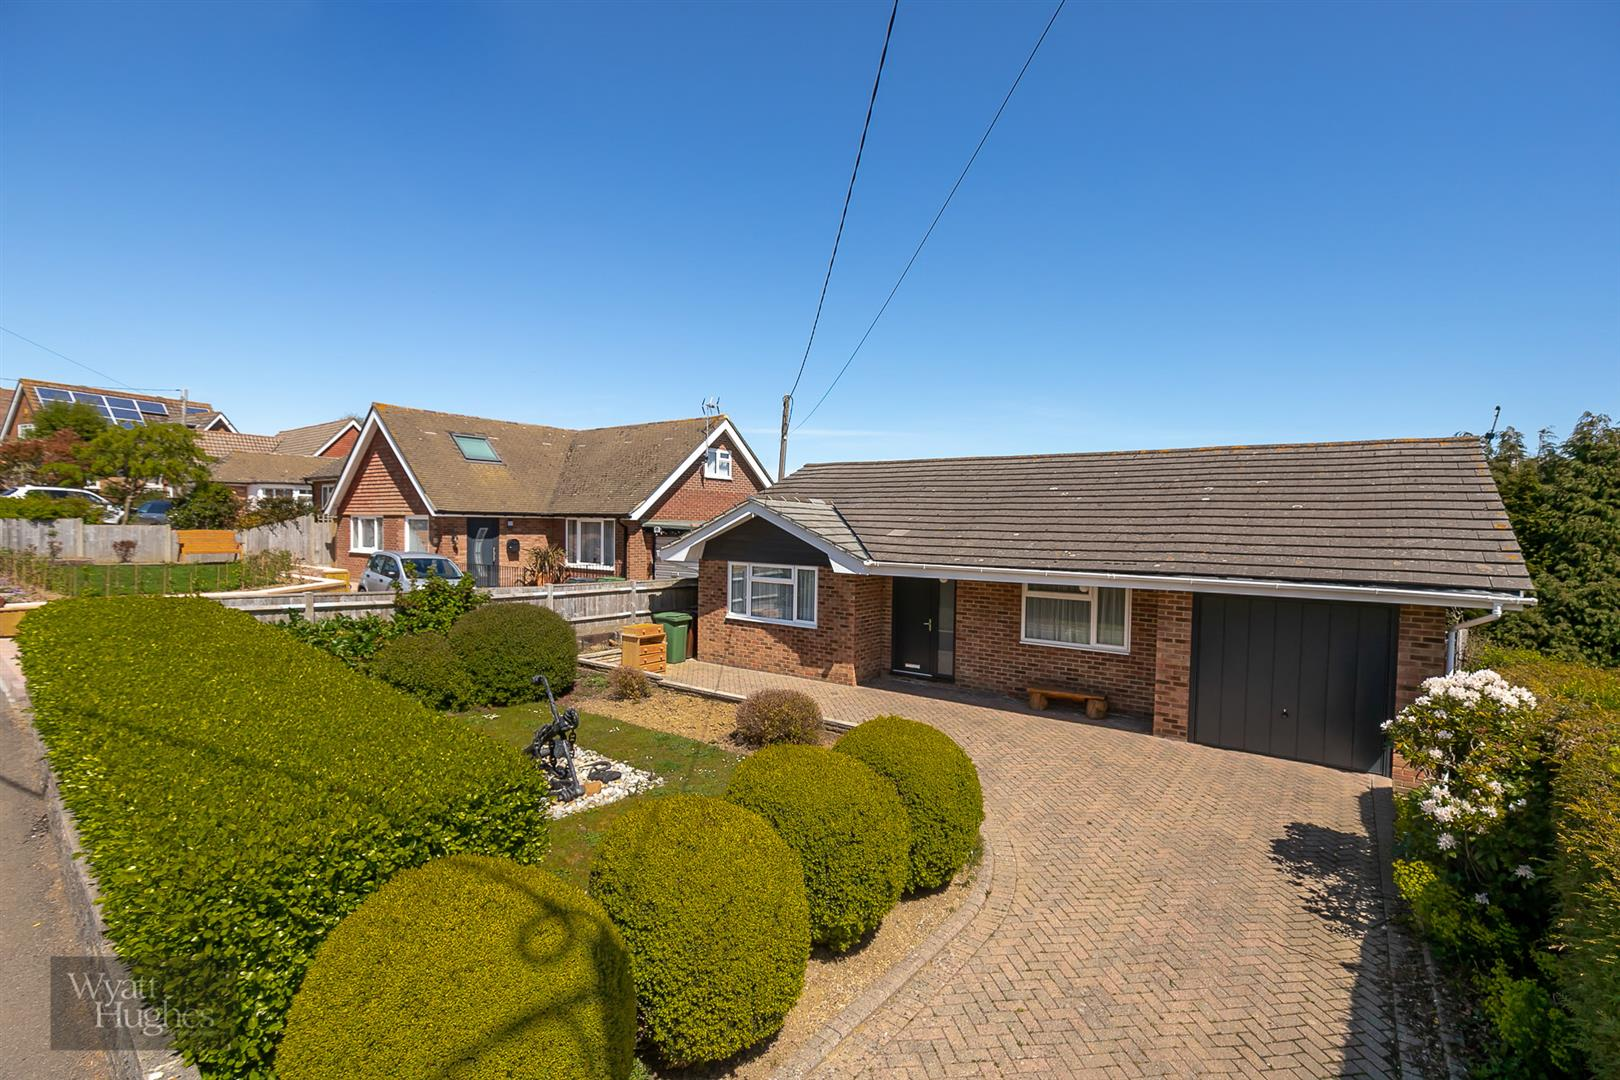 2 bed detached bungalow for sale in Waites Lane, Hastings, TN35